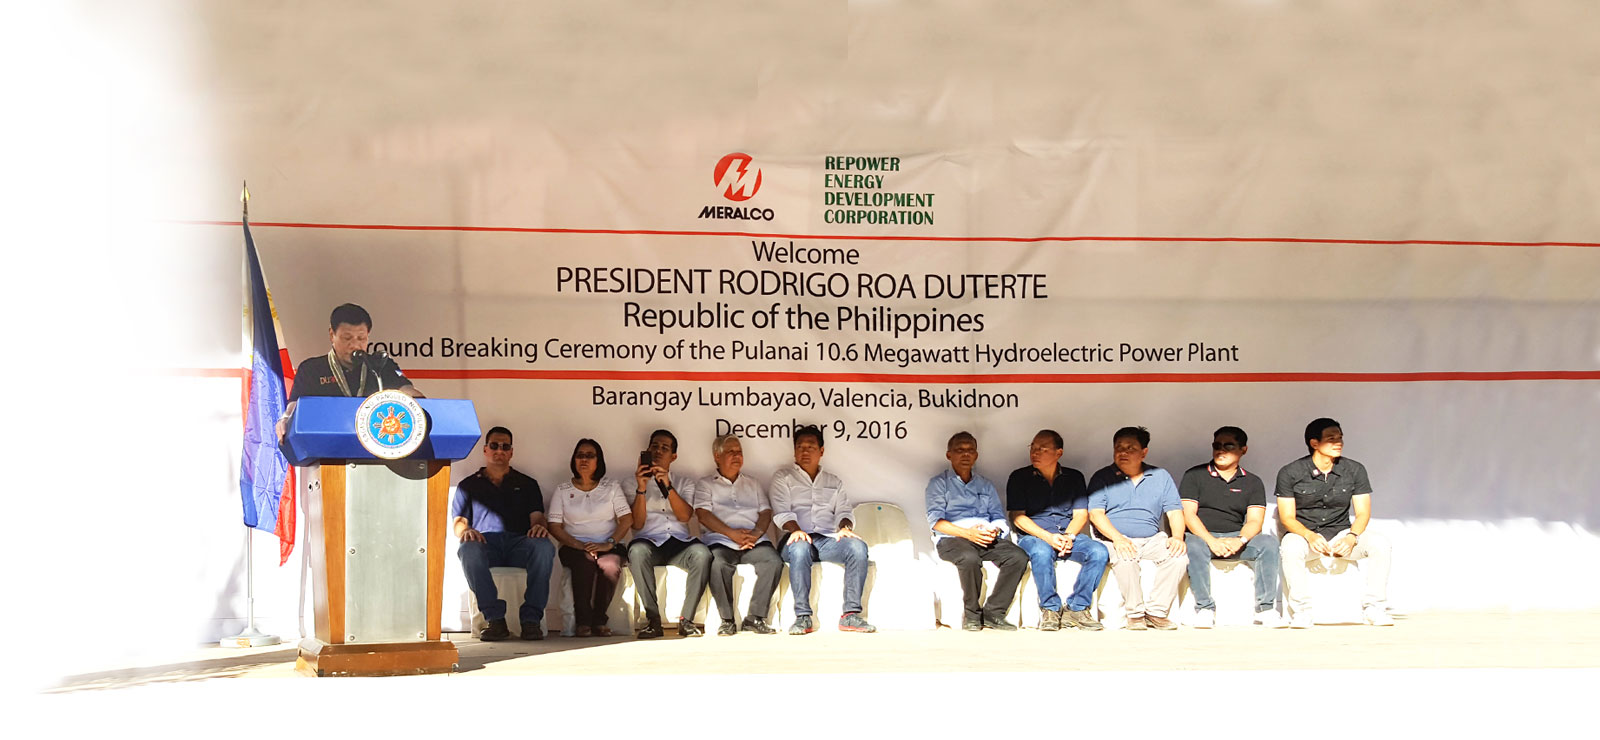 Dexter Tiu Pure Energy Holdings Corporation Groundbreaking